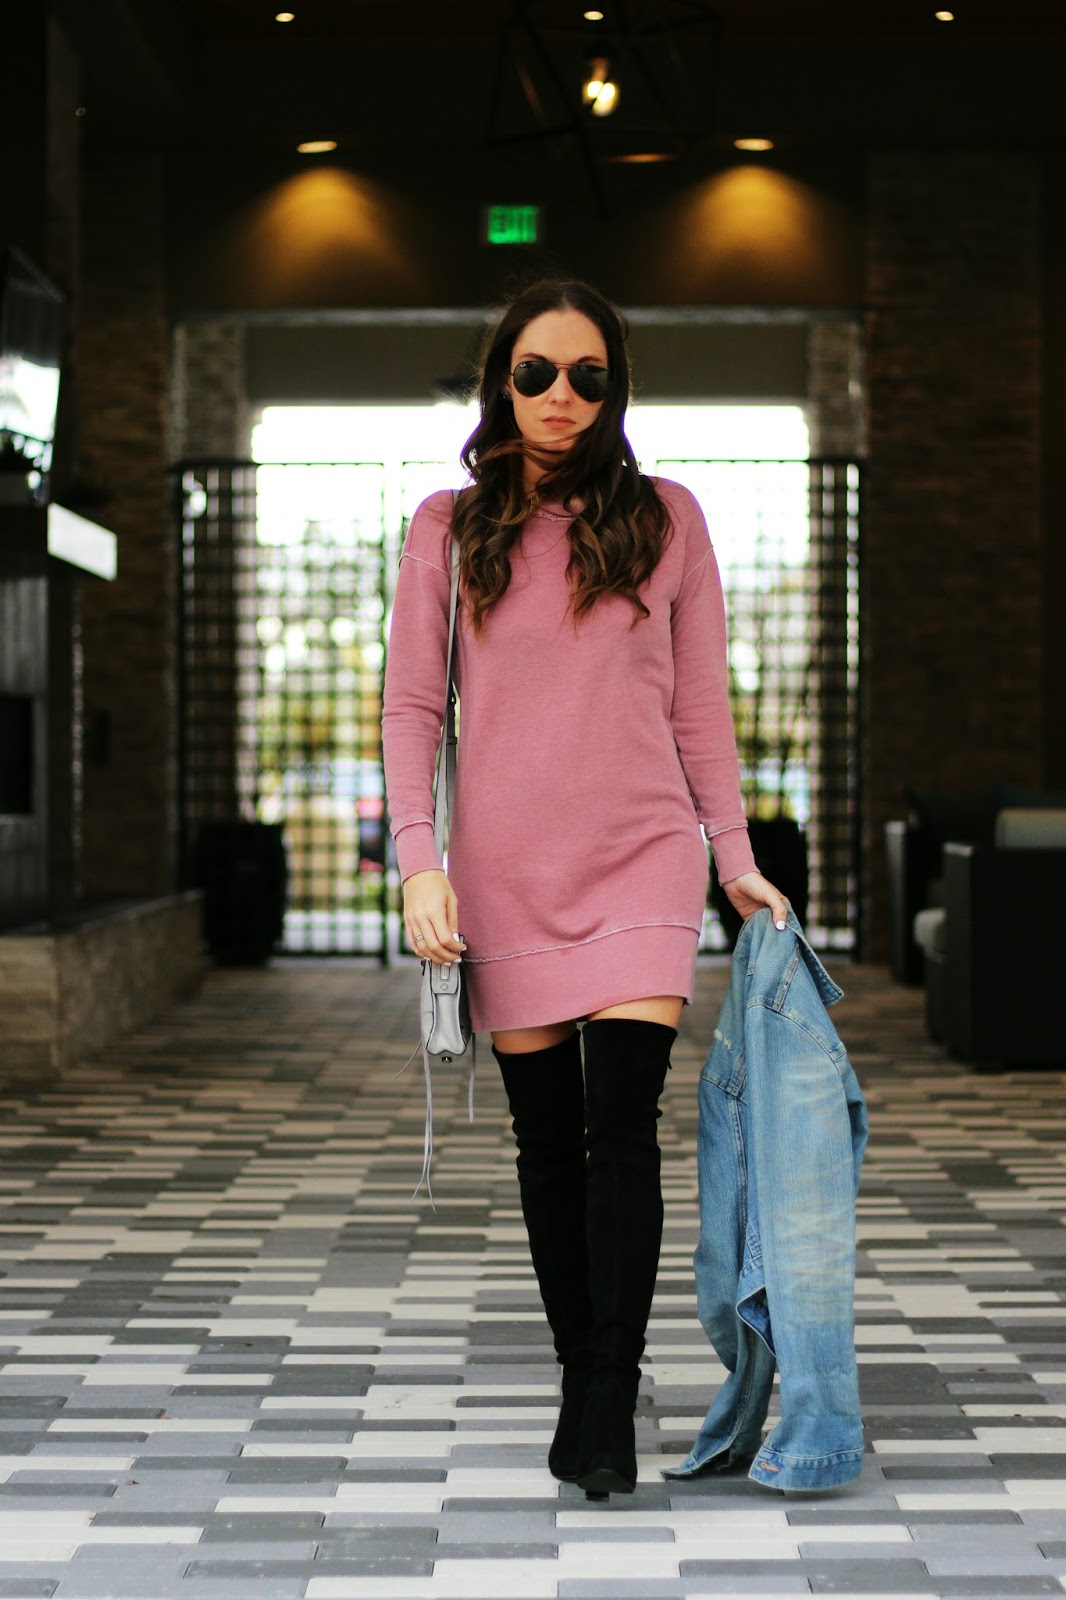 Sweatshirt dress with over the knee boots